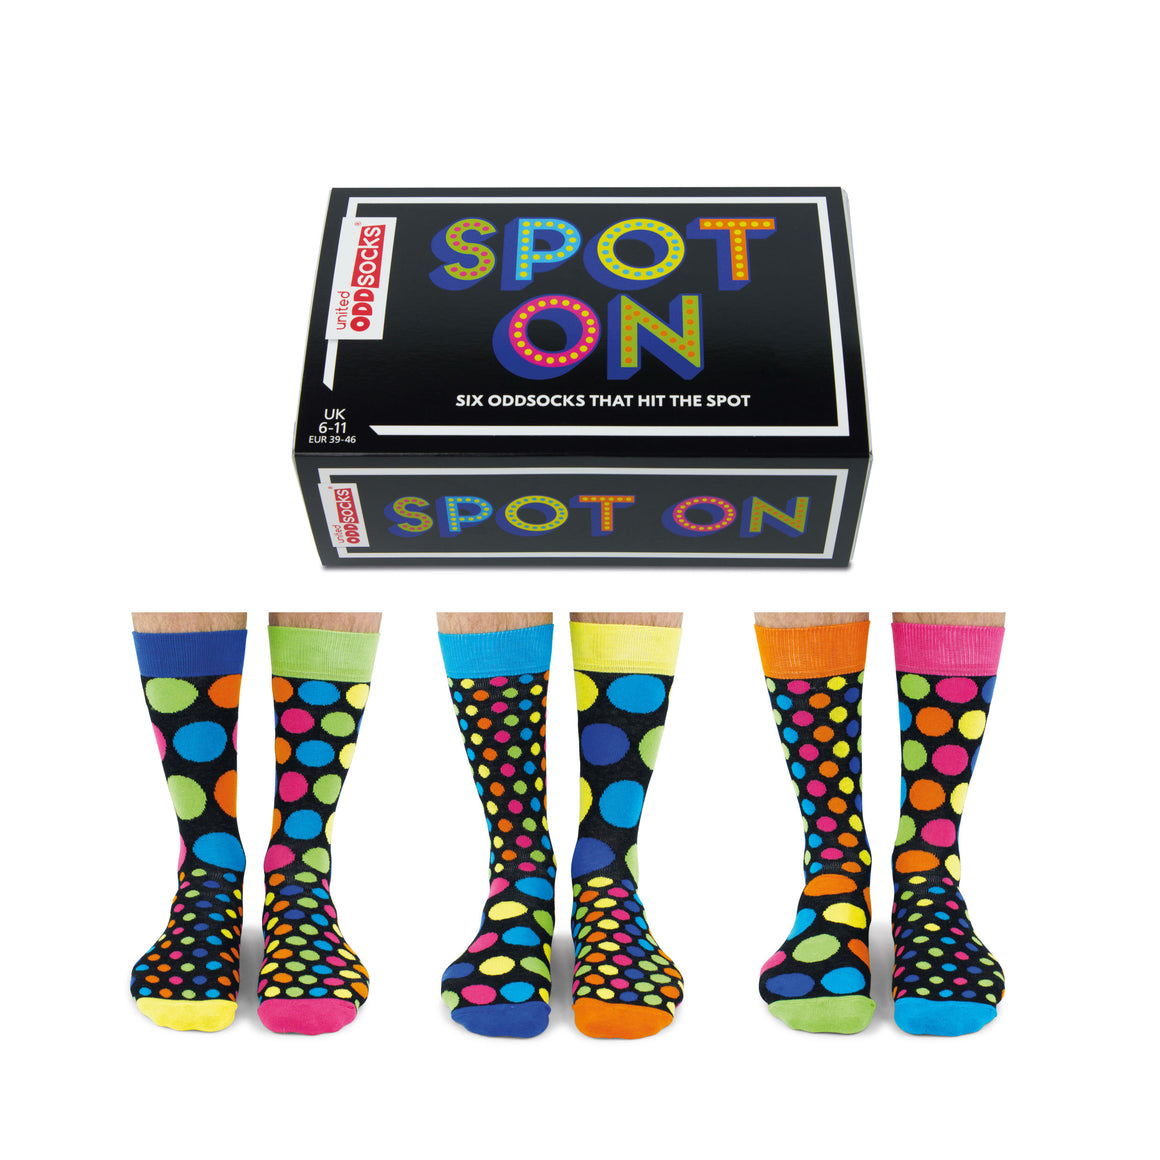 United Odd Socks Spot On Mens Gift Box